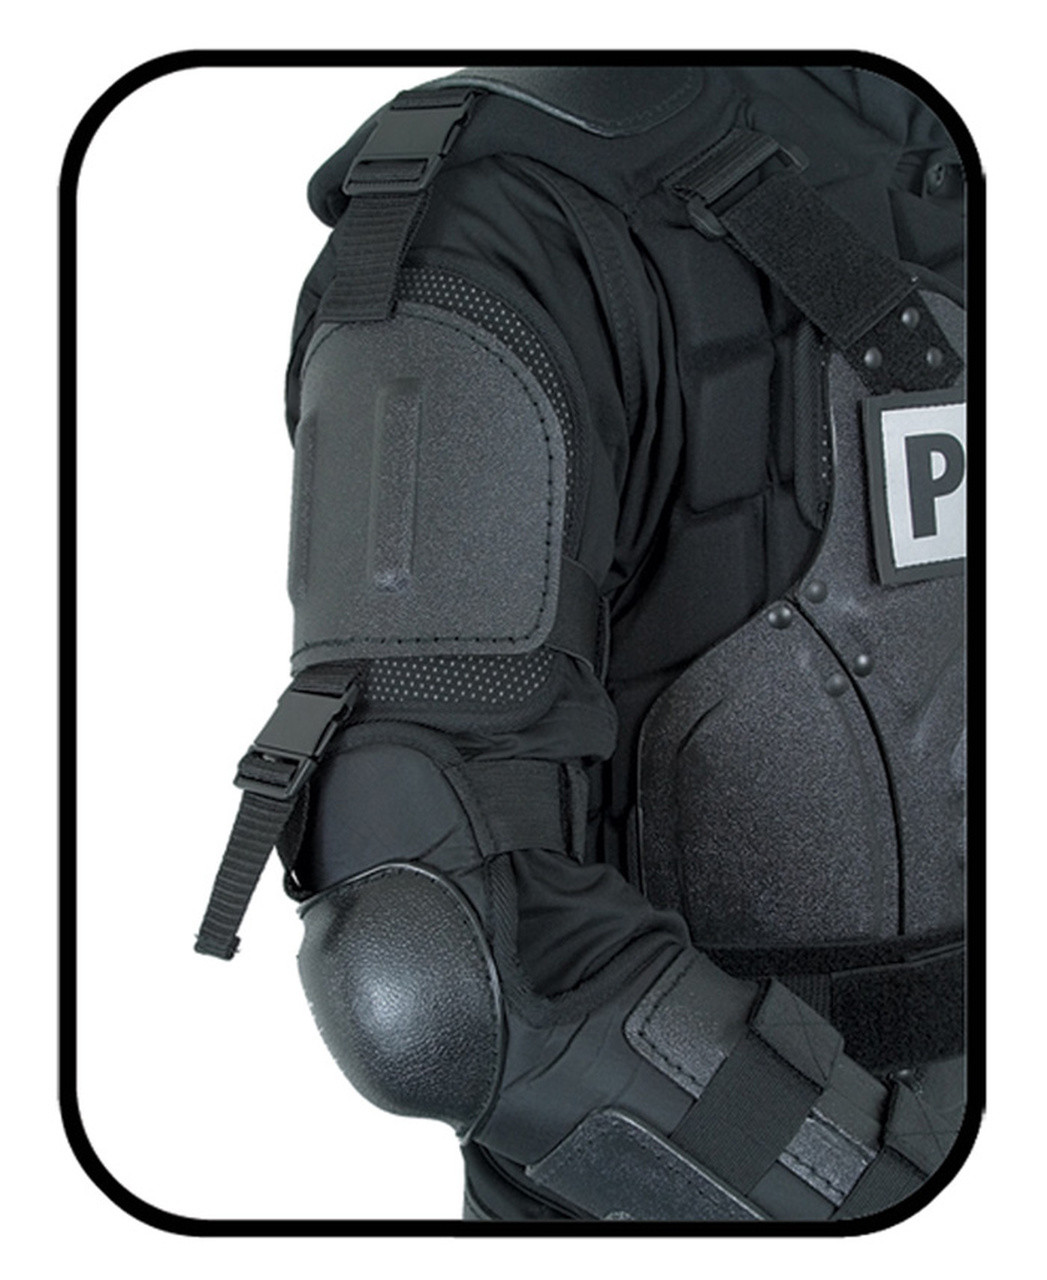 Damascus FX-1 Flex-Force Law Enforcement Riot Gear Protective Suit, complete kit except the helmet, includes upper body, shoulder, forearm, groin, thigh, knee and shin protection, and Gear Bag